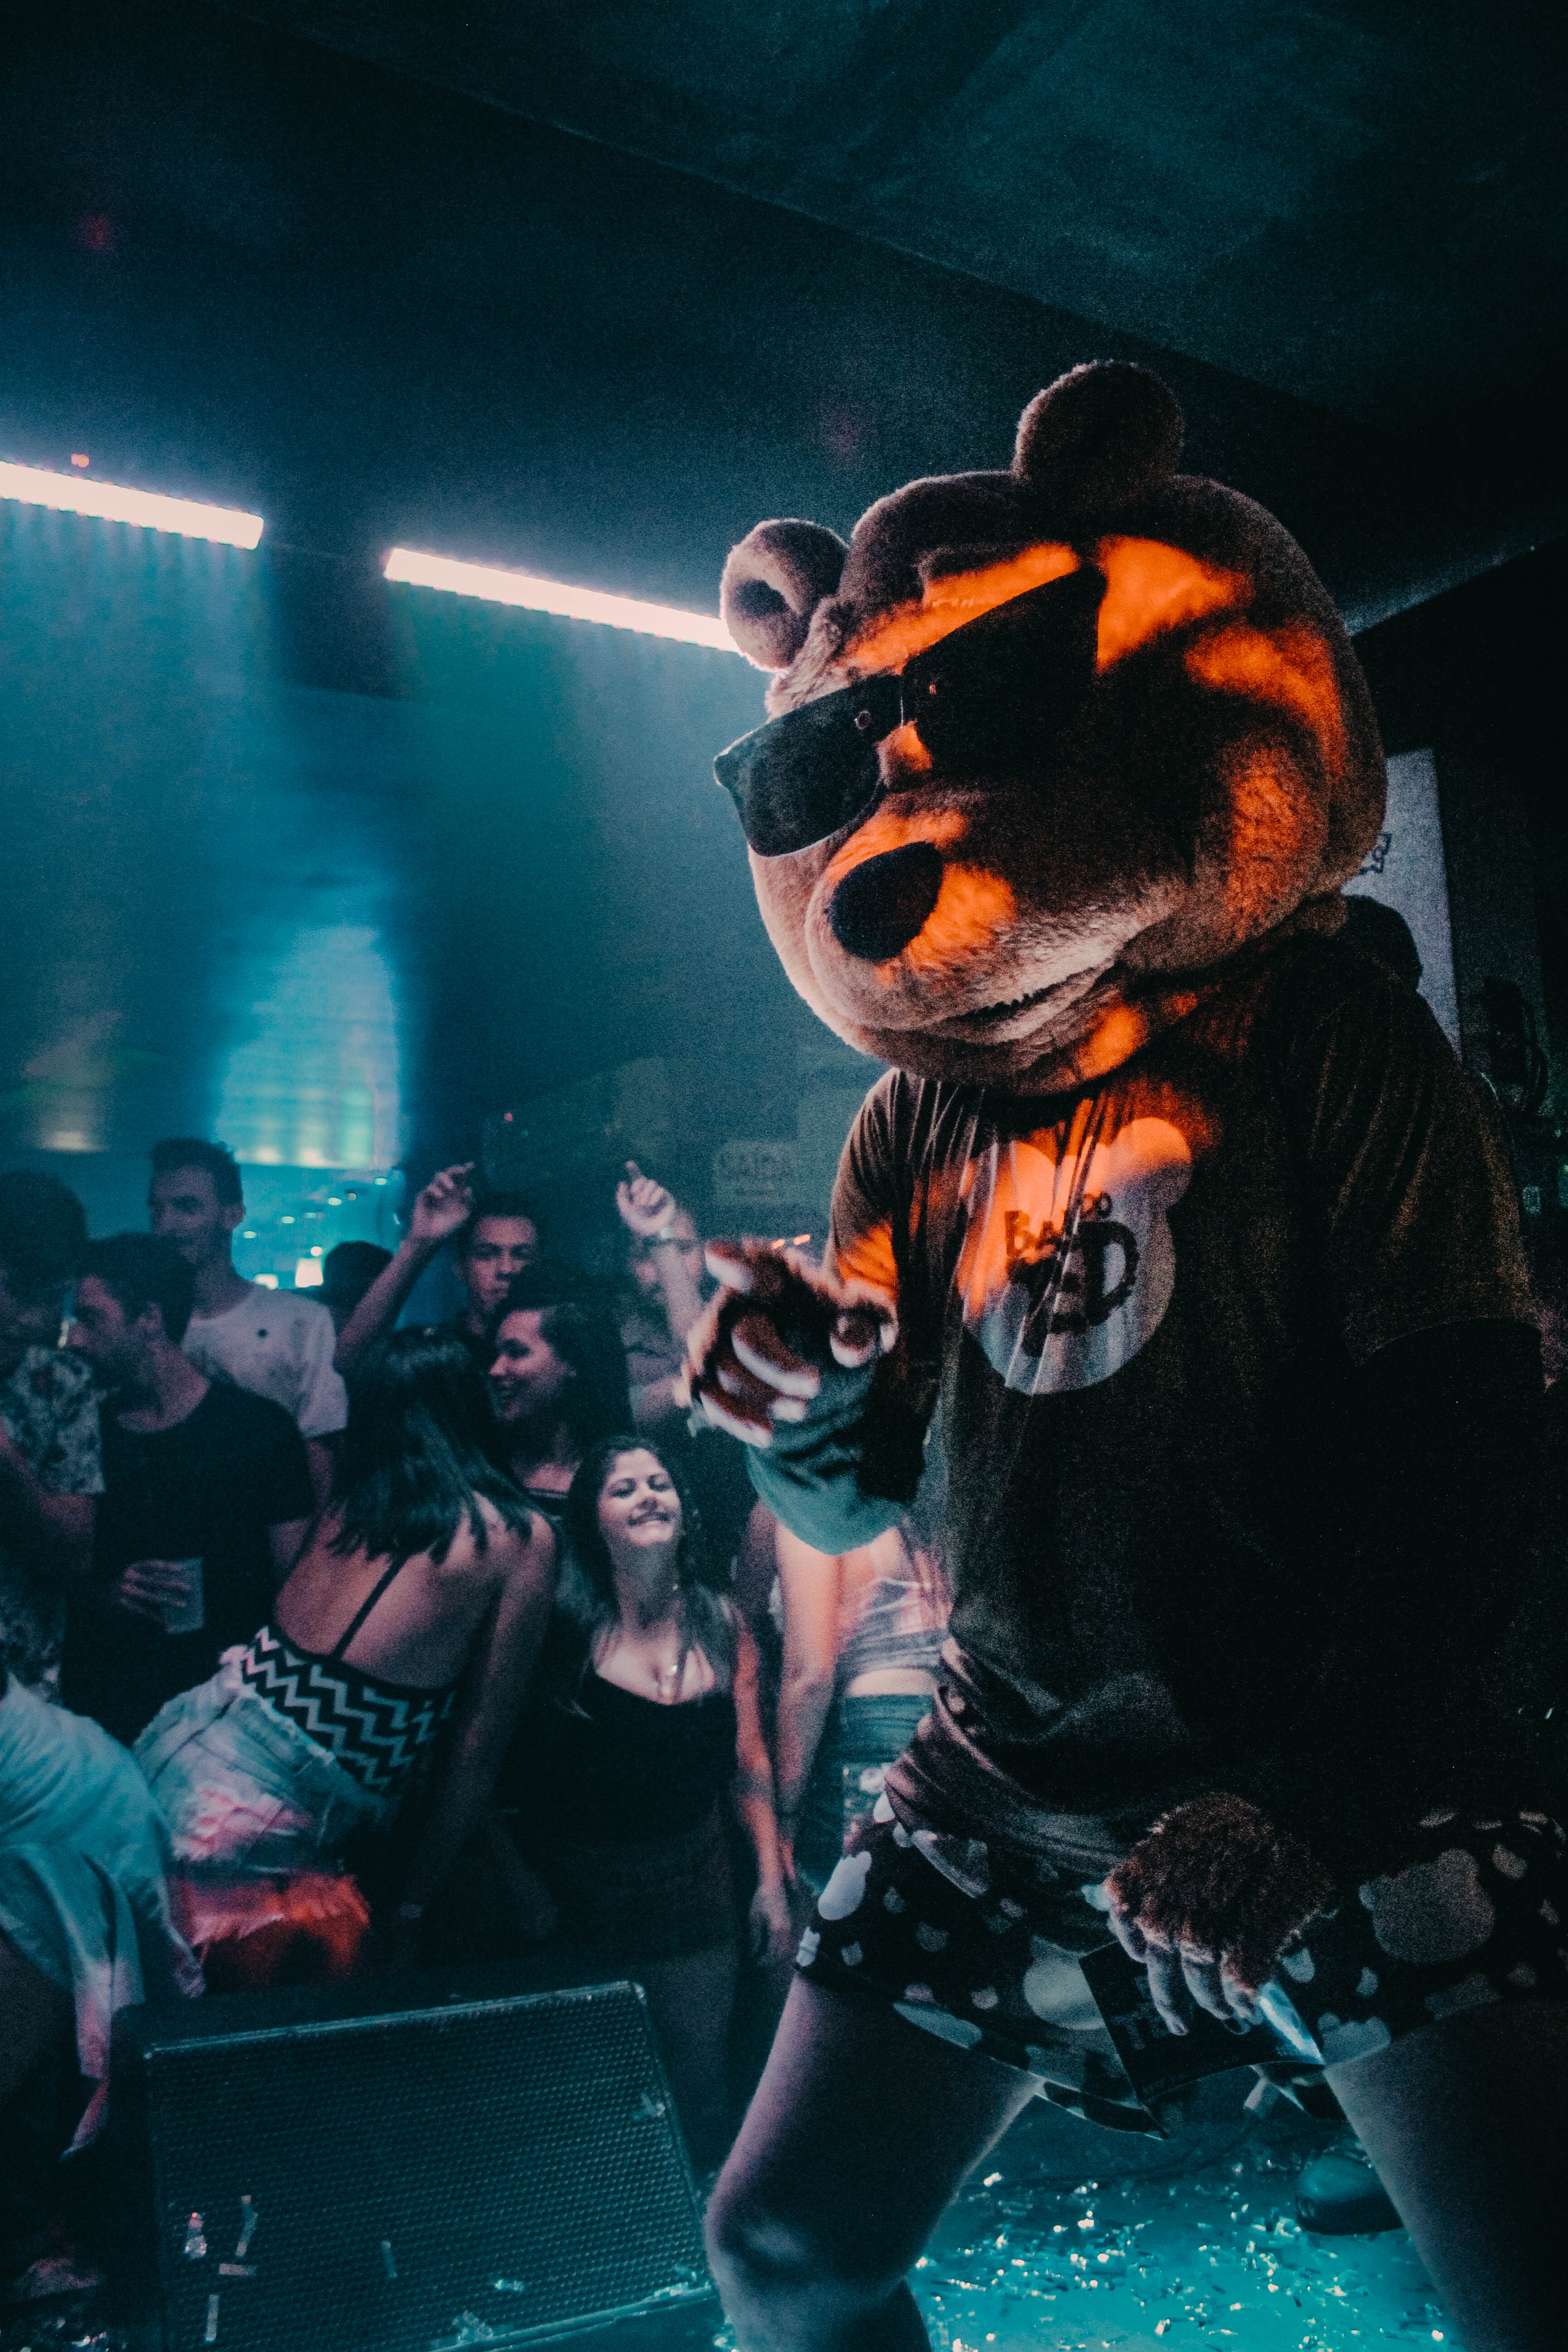 Person Wearing Bear Mask Dancing on Stage